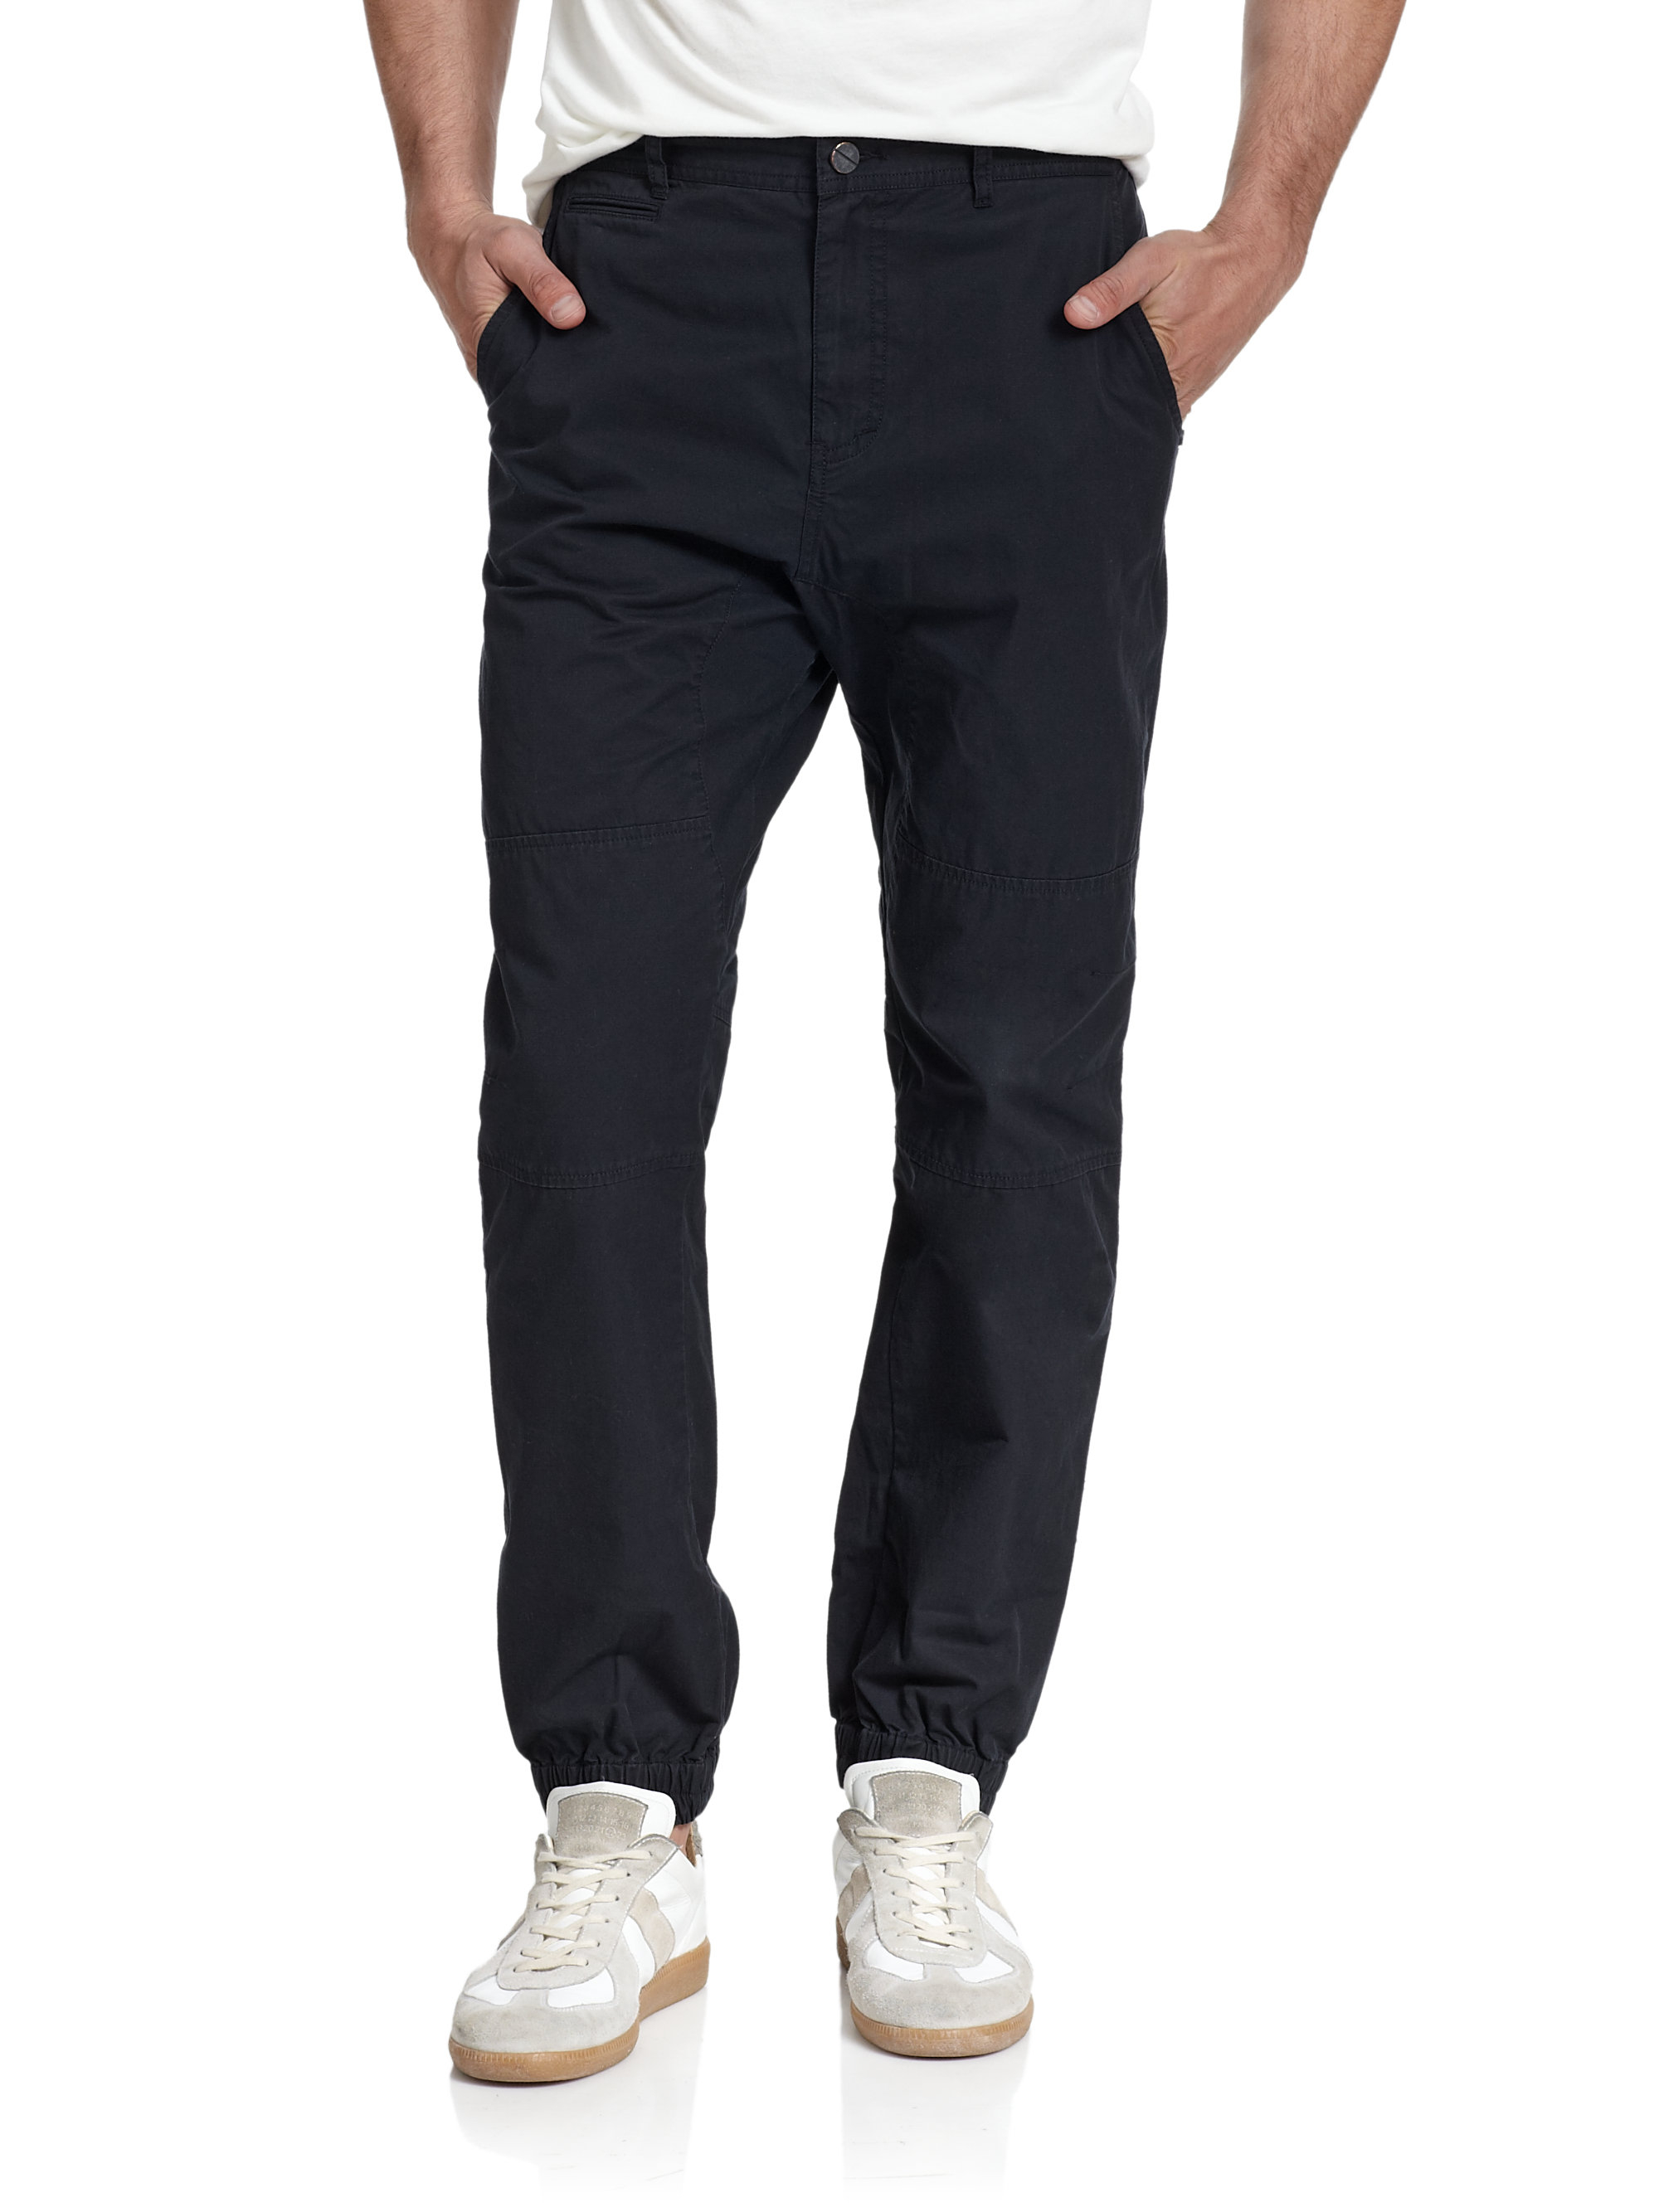 Men's joggers are the perfect way to make casual comfort possible. More than just a regular pair of sweatpants, joggers for men look cool, keep you warm, and feel great. Find men's joggers in all your favorite styles, from classic black joggers that you can rock from the office to the gym to colored joggers in grey, navy, maroon and more.